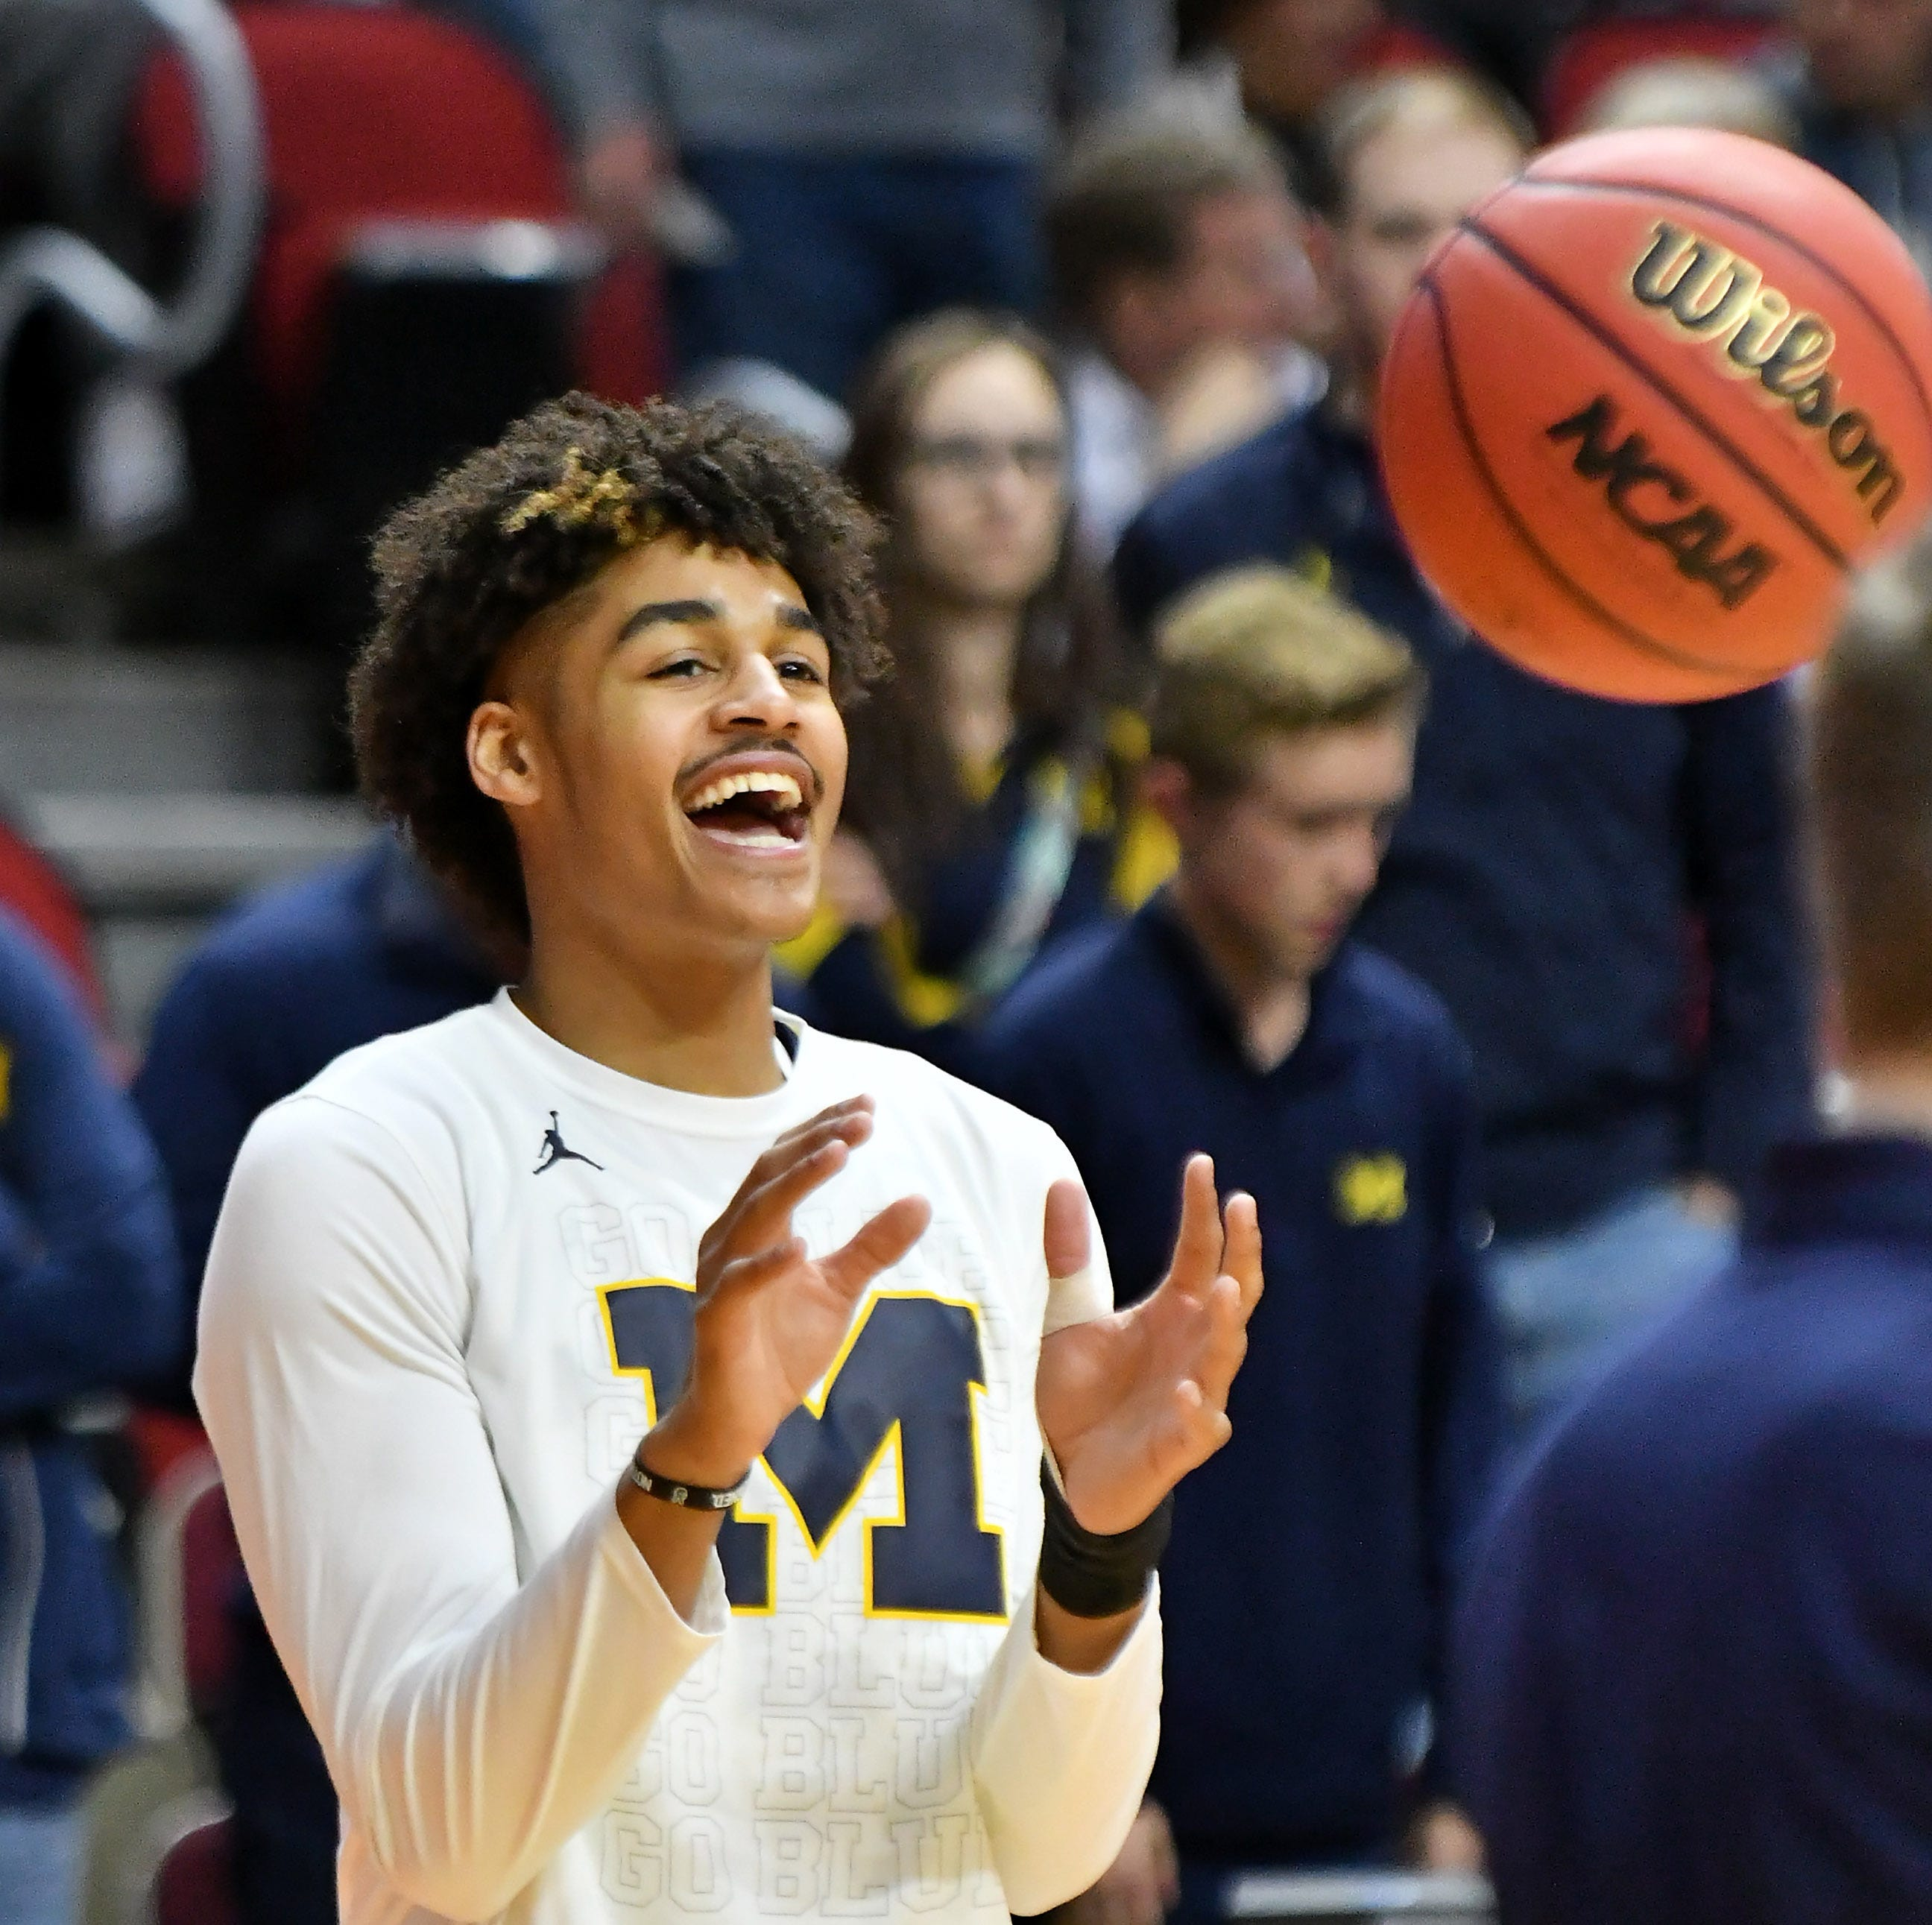 Sign points to Michigan's Jordan Poole staying in NBA draft